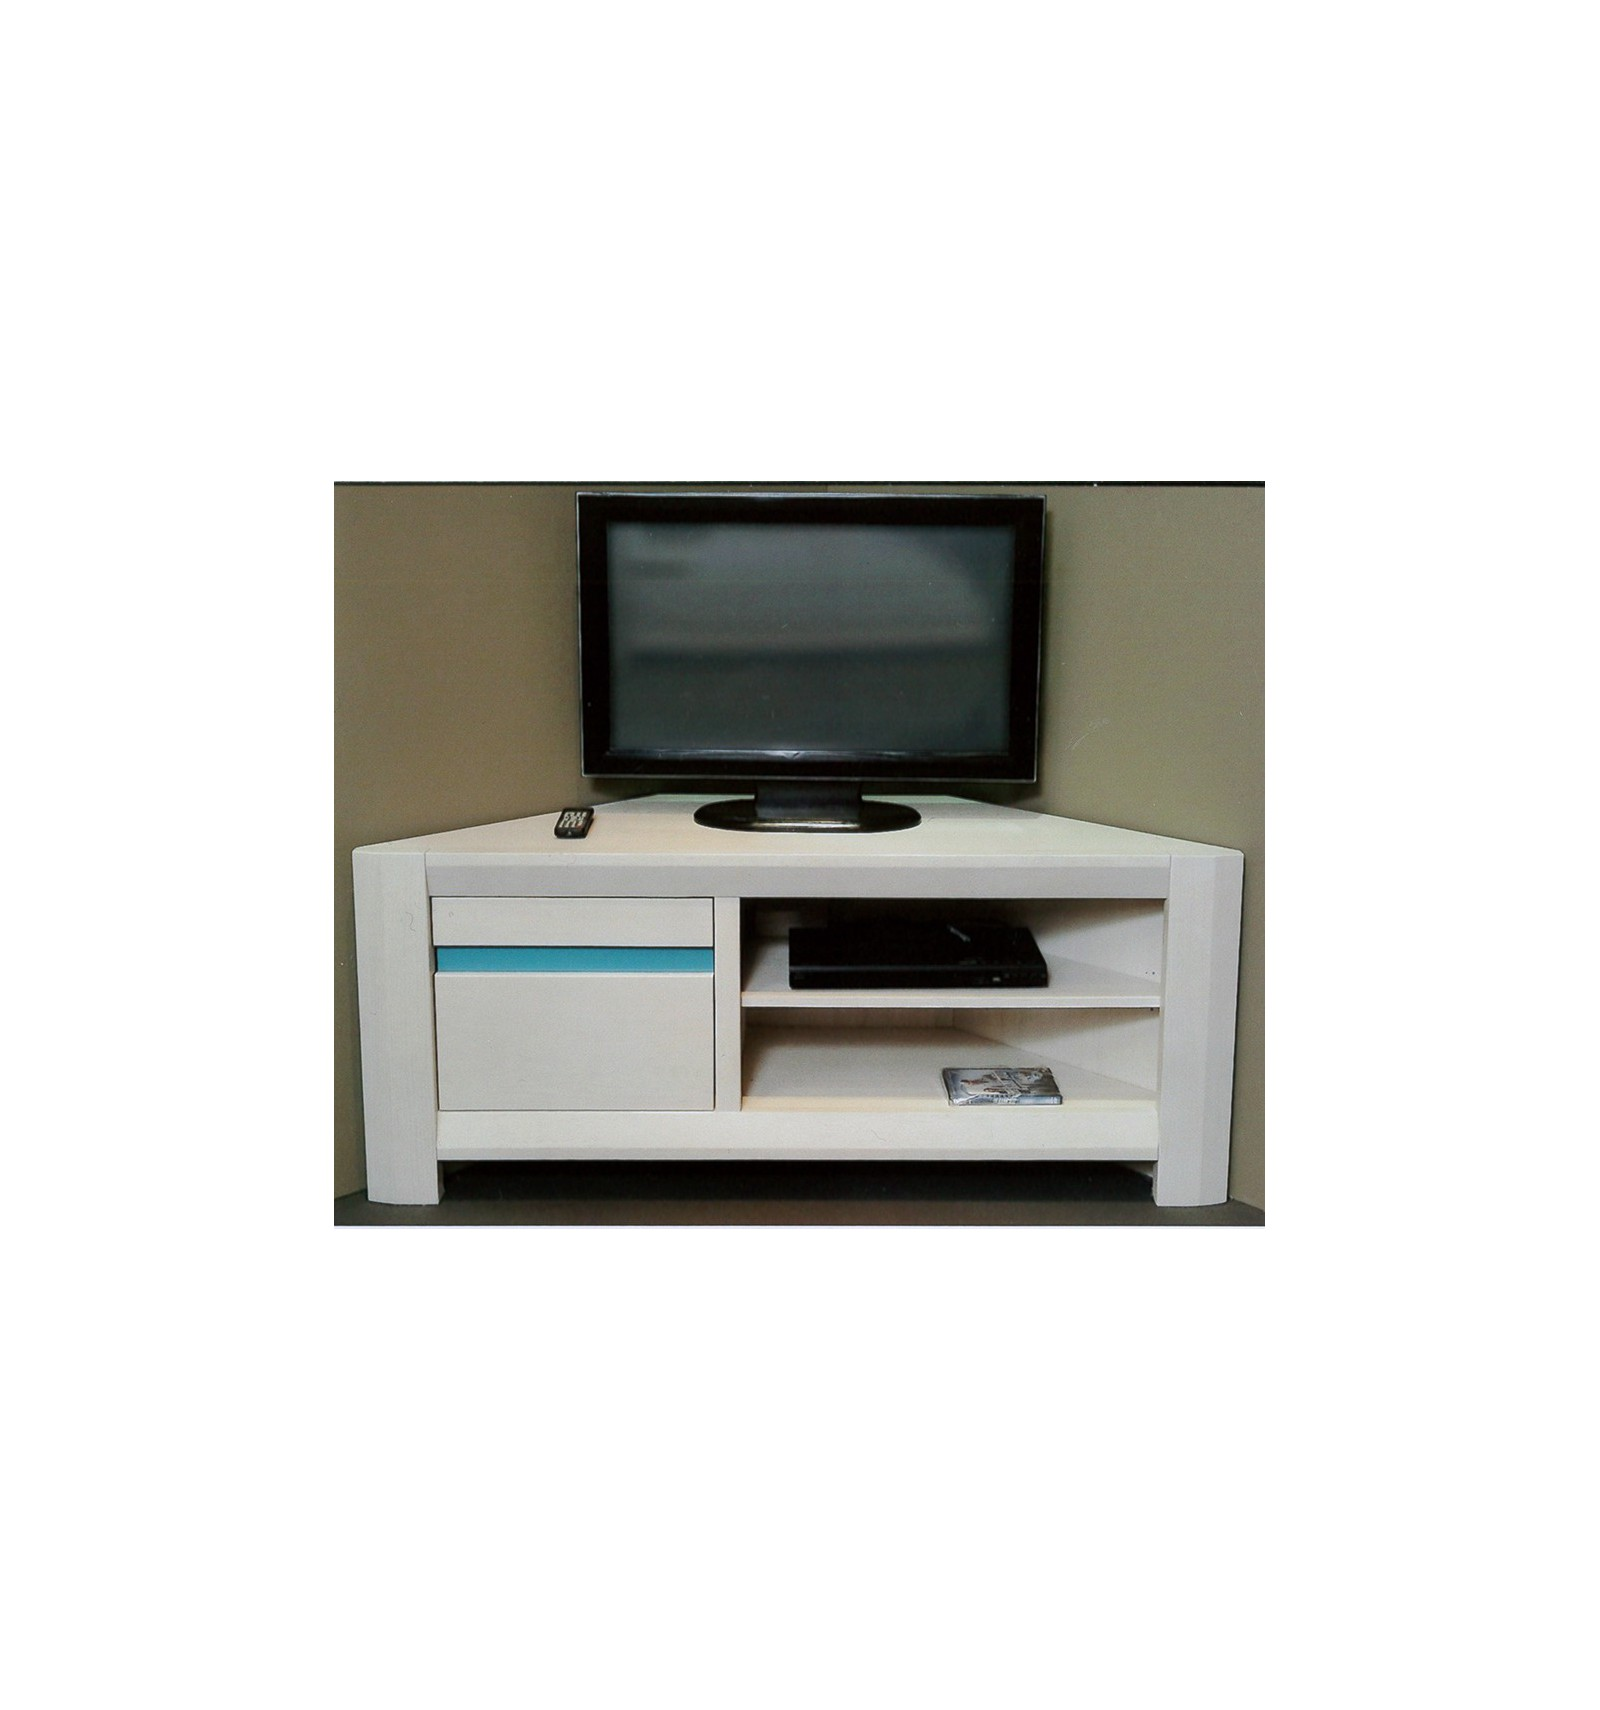 Meuble Tv D Angle Blanc Sellingstg Com # Ikea Meuble Tv D Angle